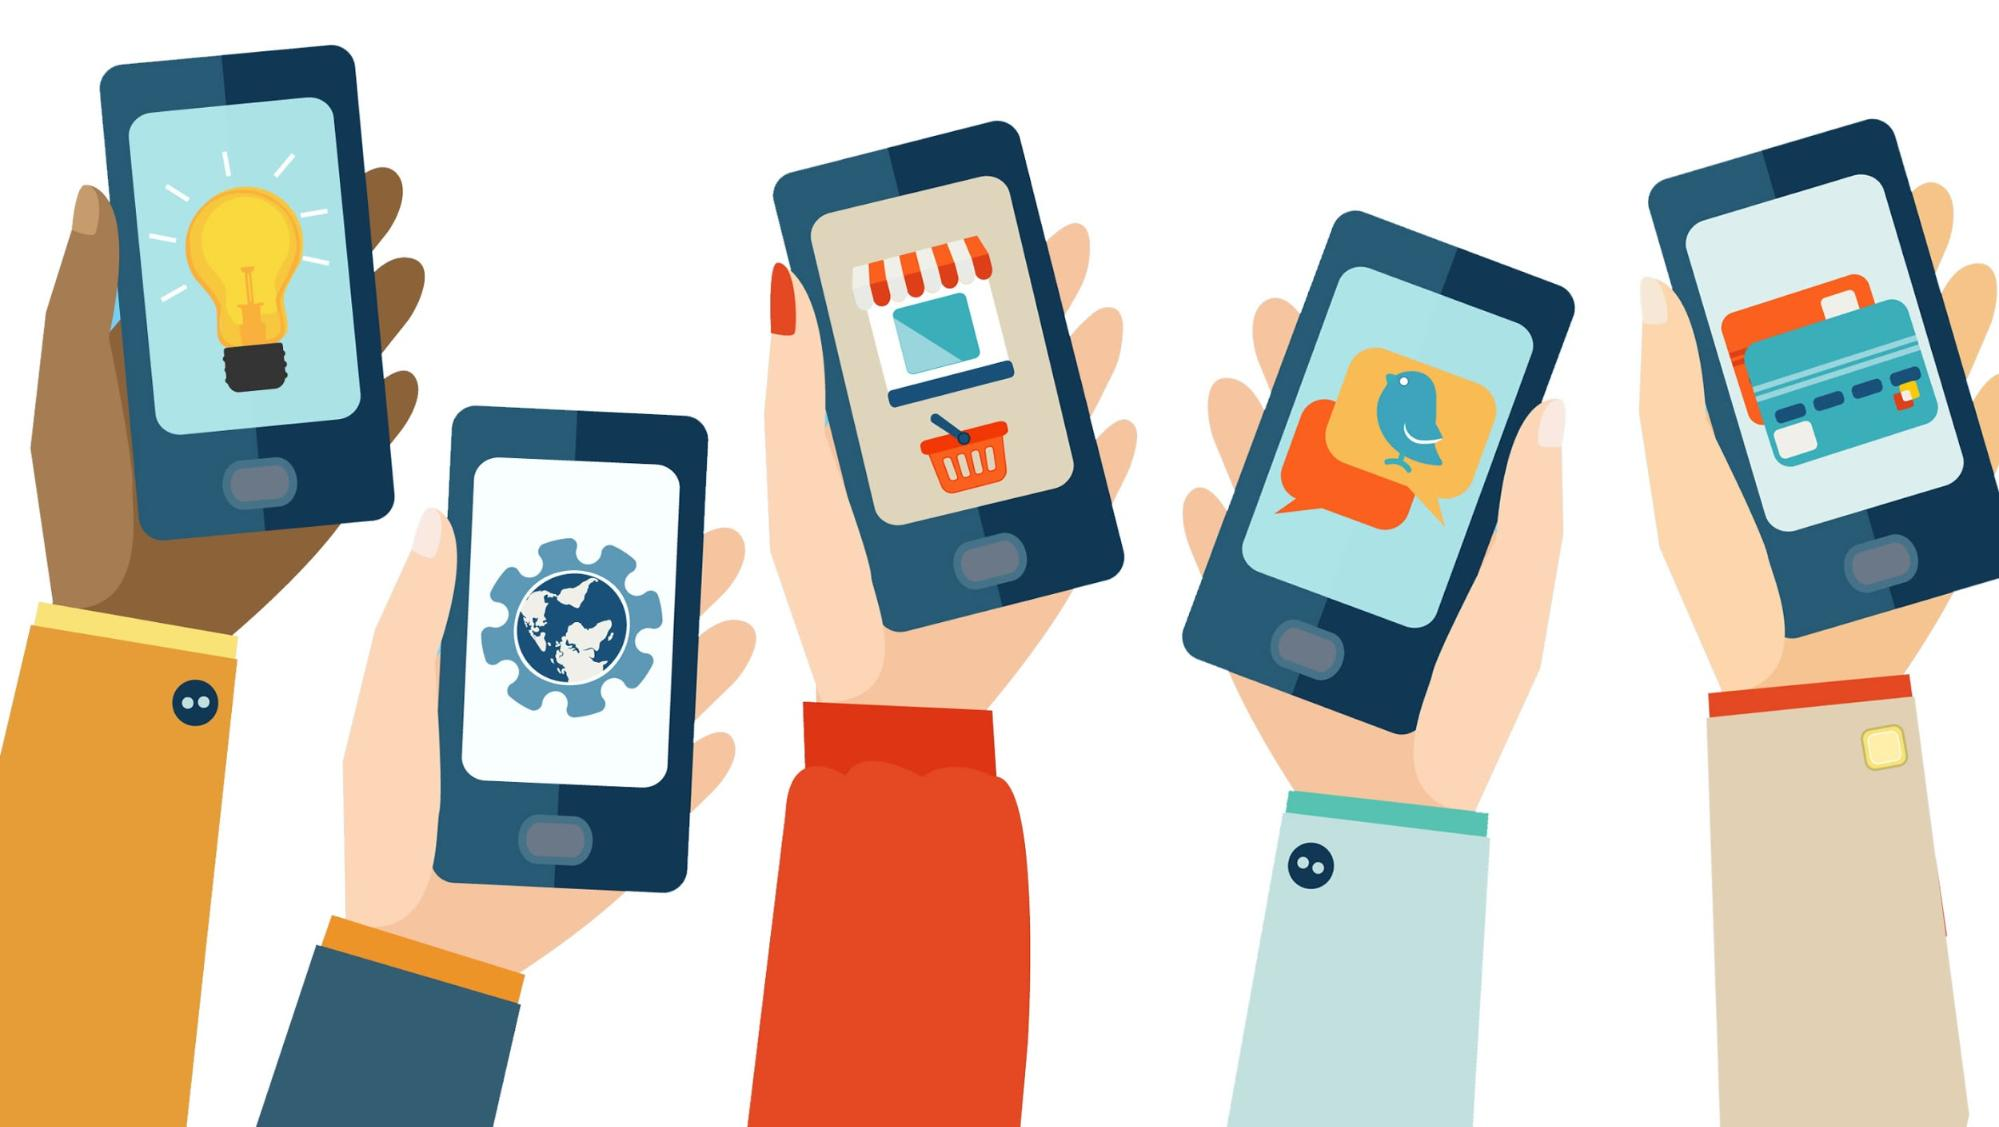 Optimize for mobile use